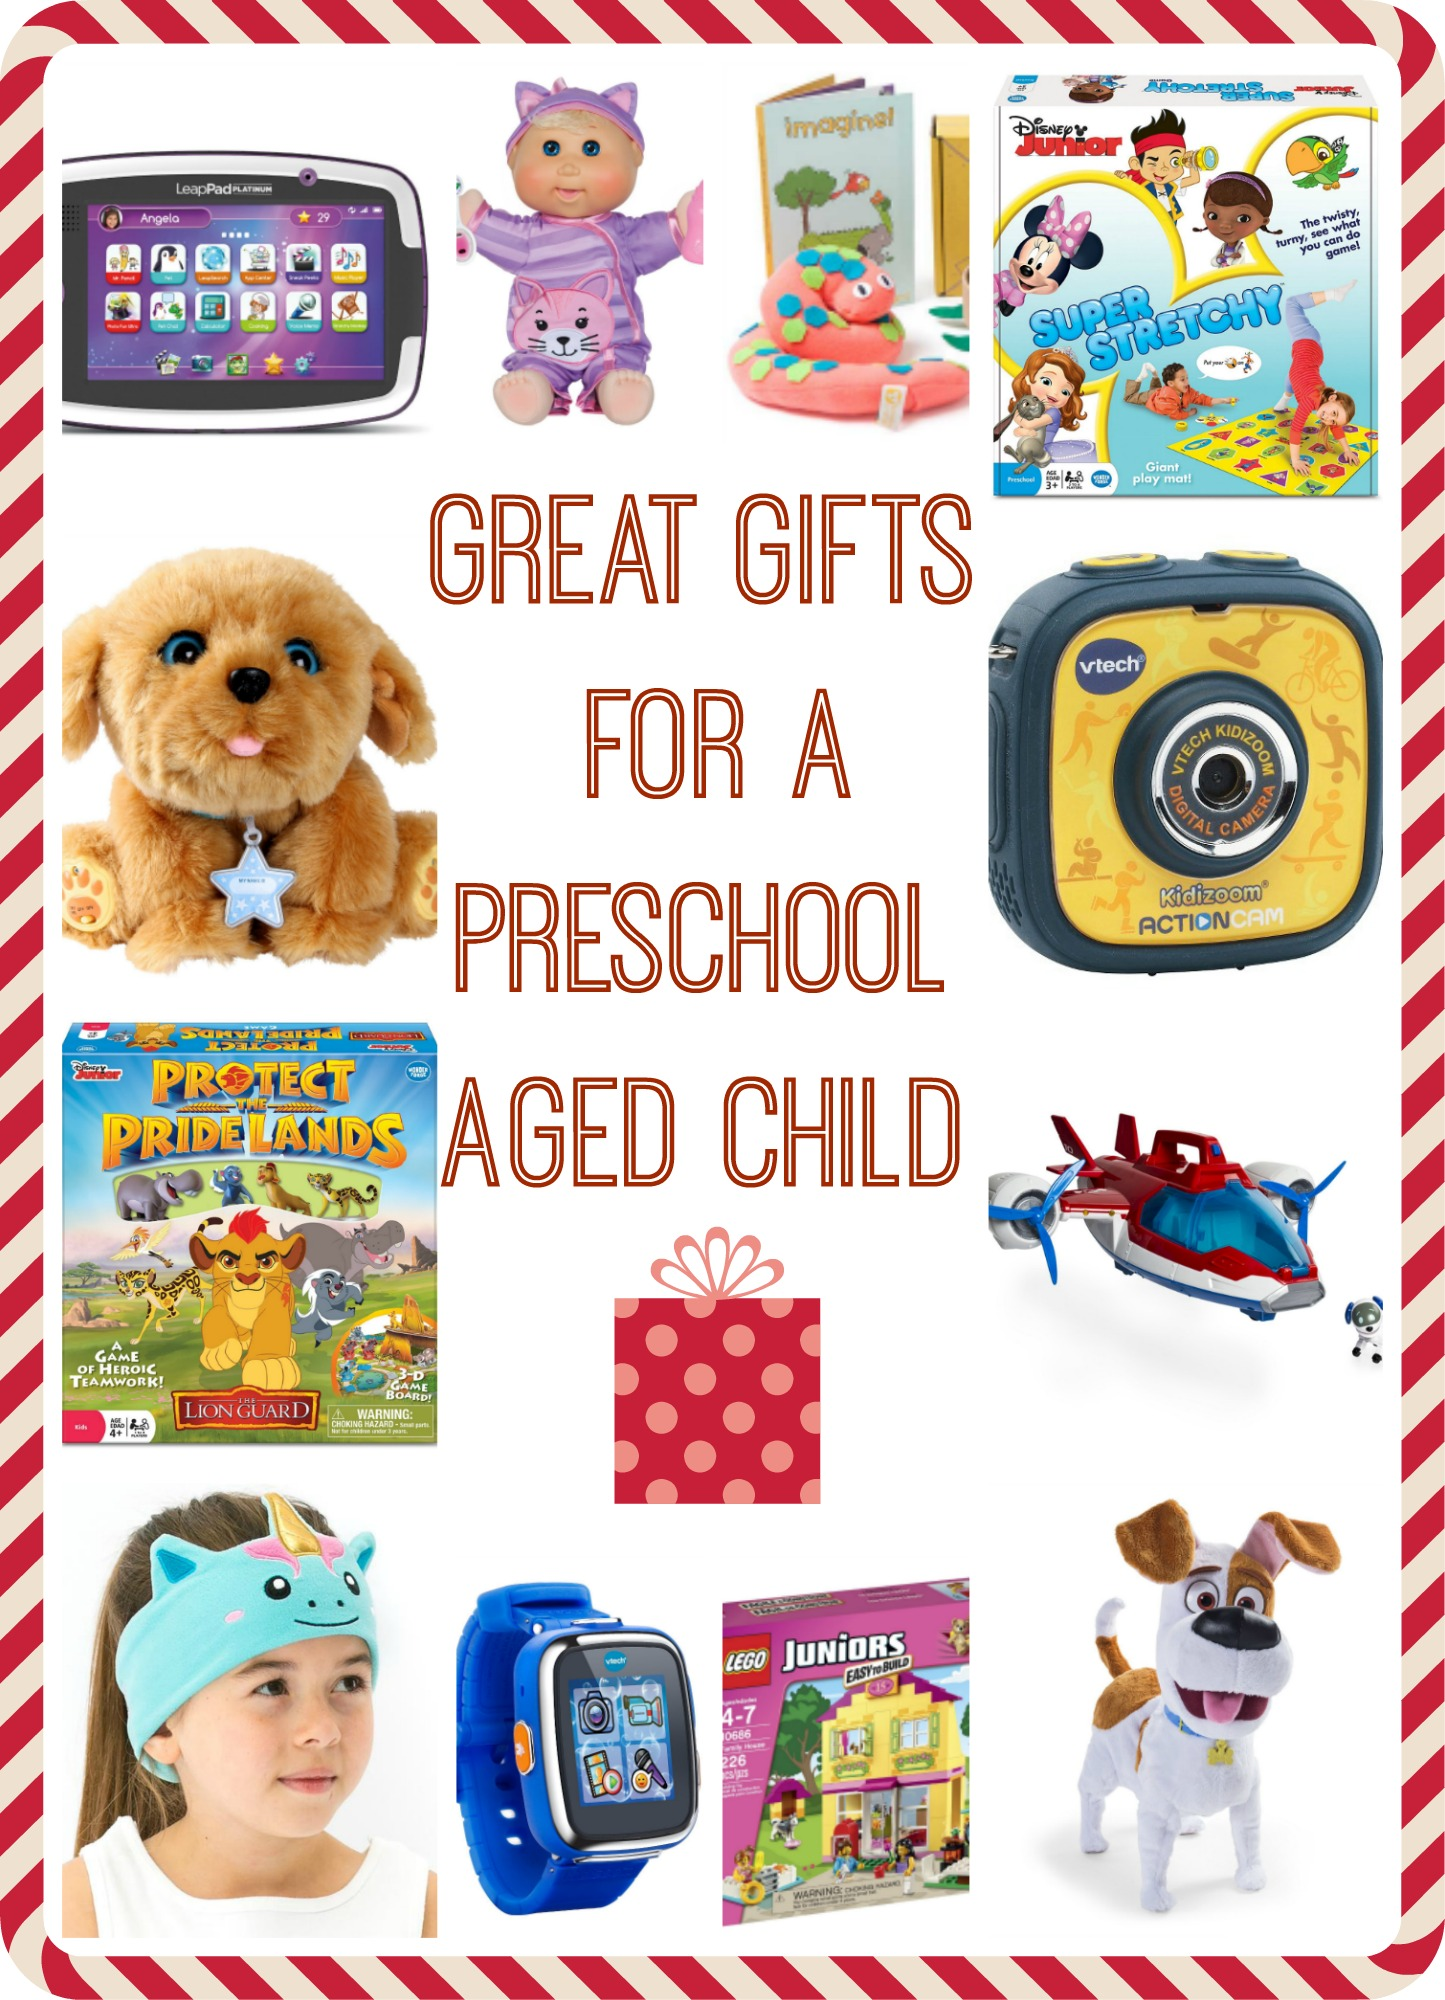 Great Gift Ideas for Preschoolers